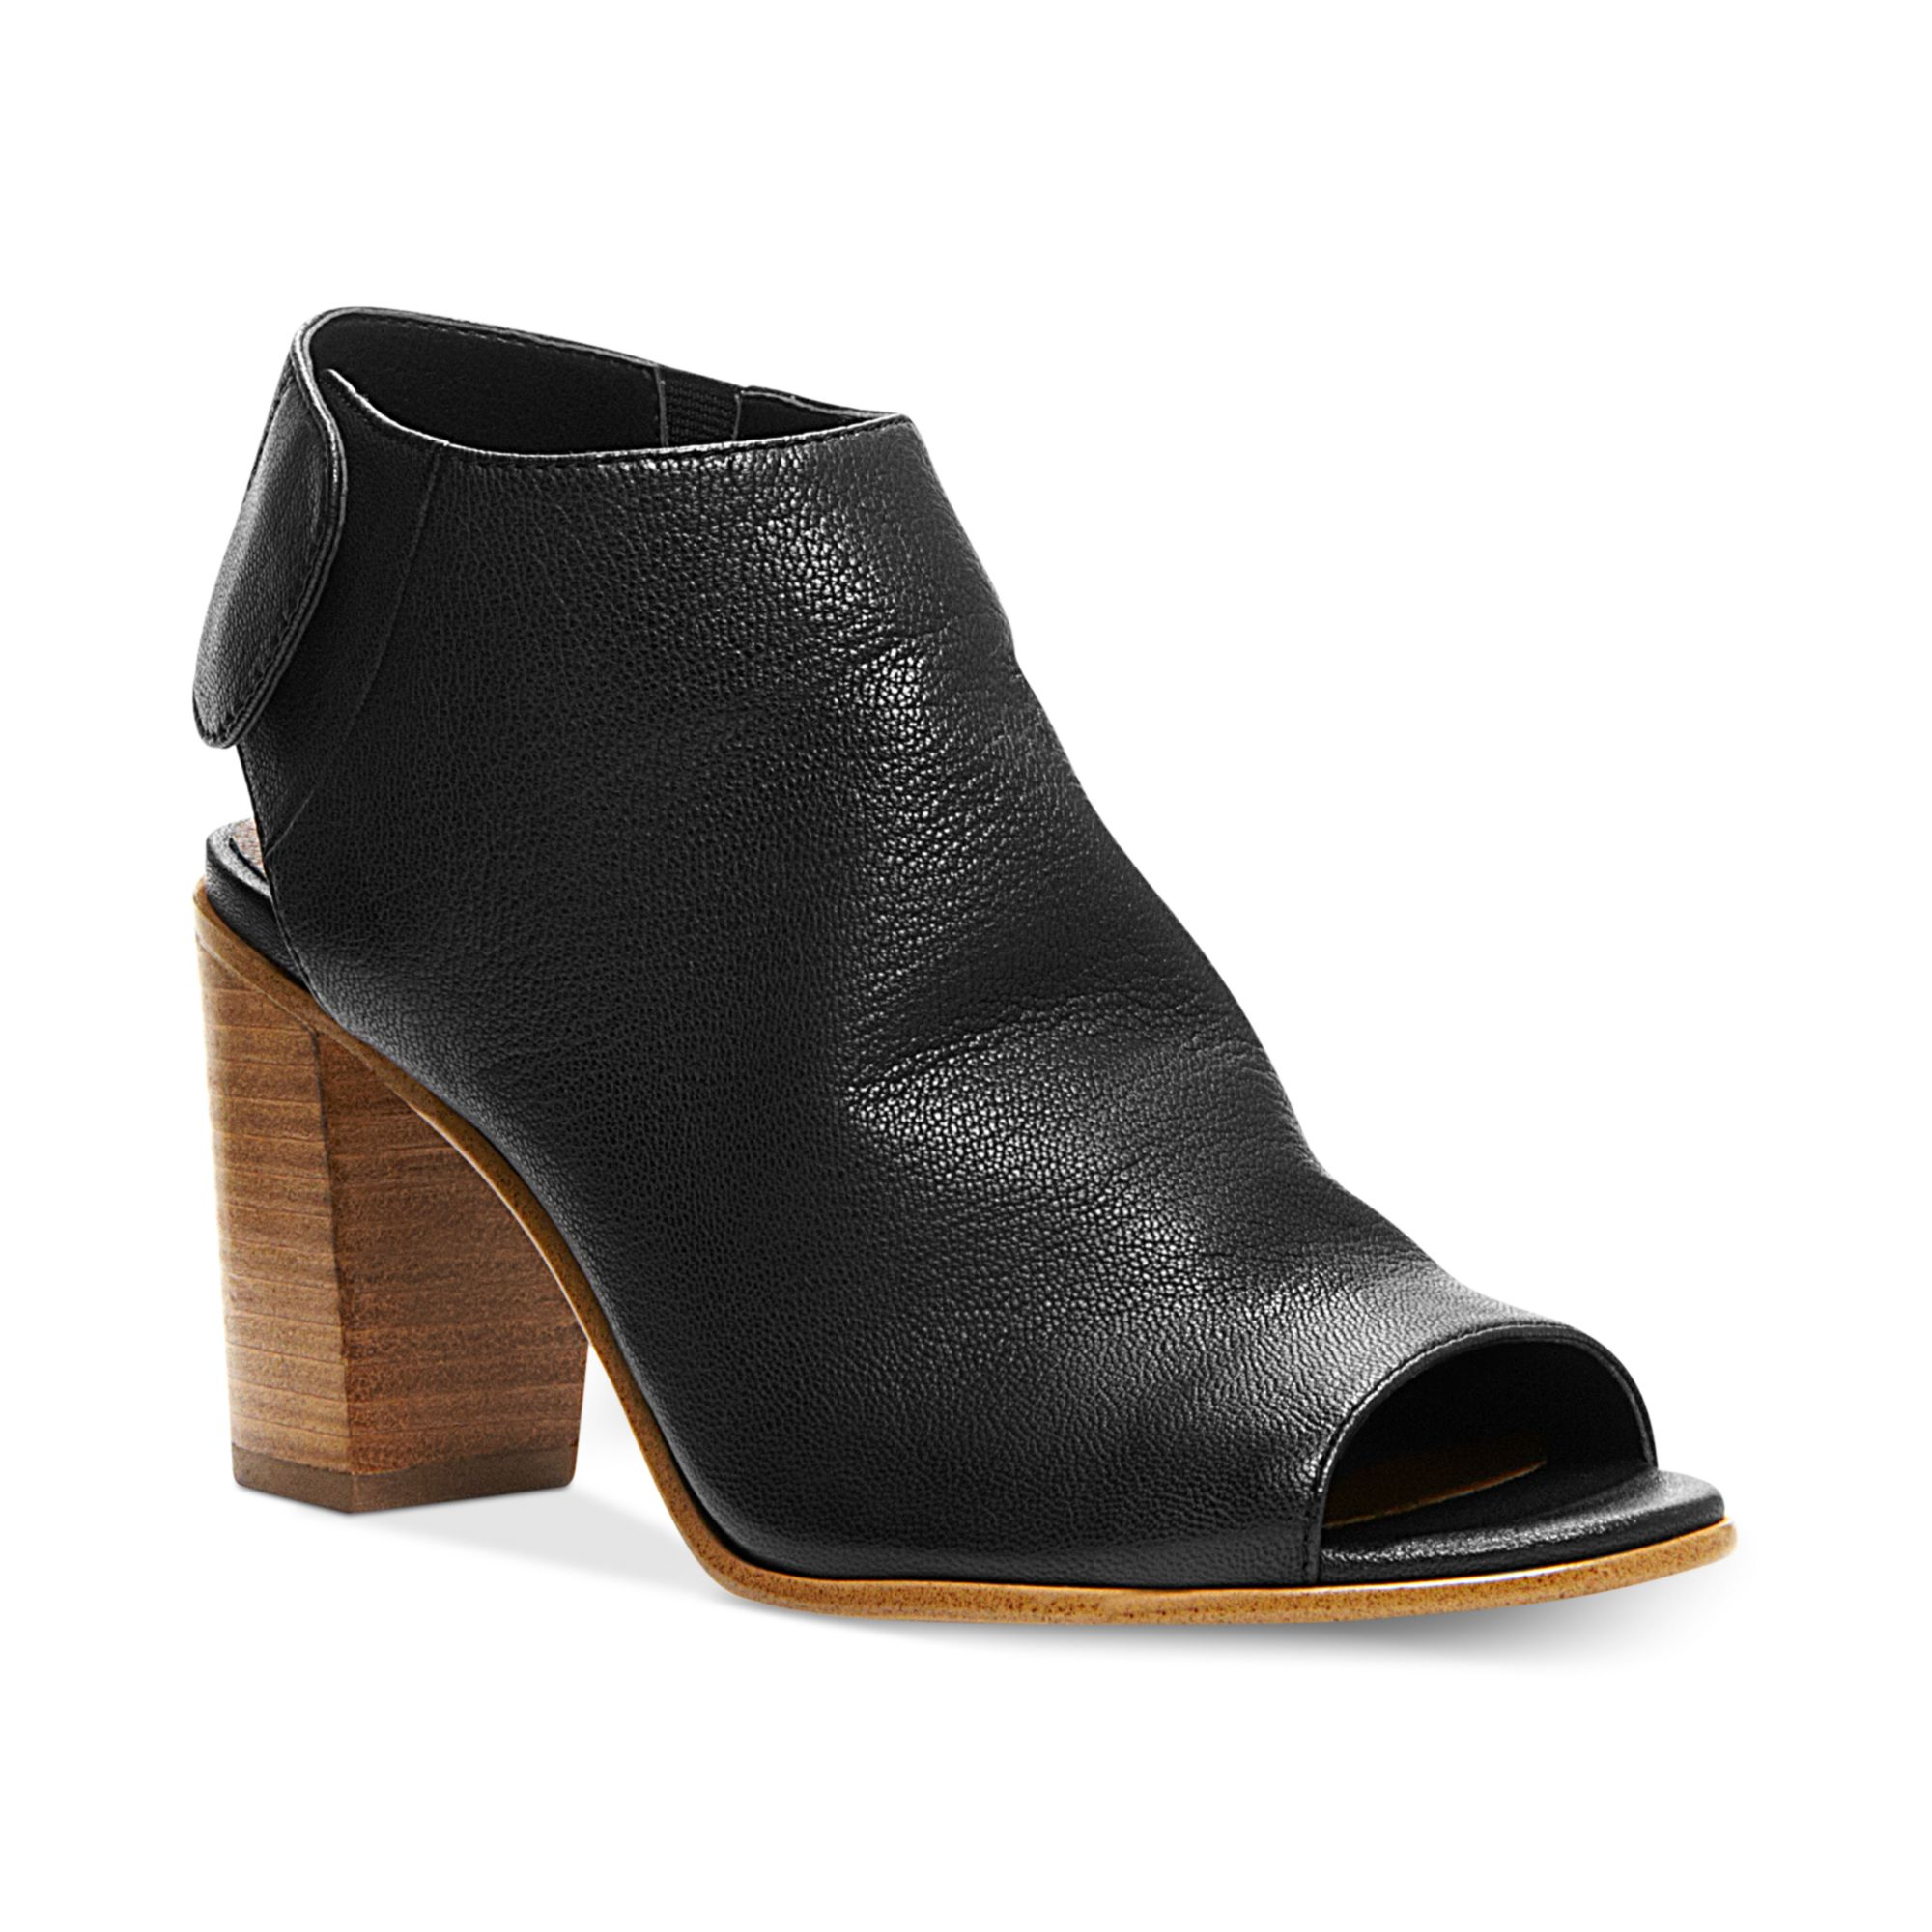 Steve Madden Womens Nonstop Booties in Black